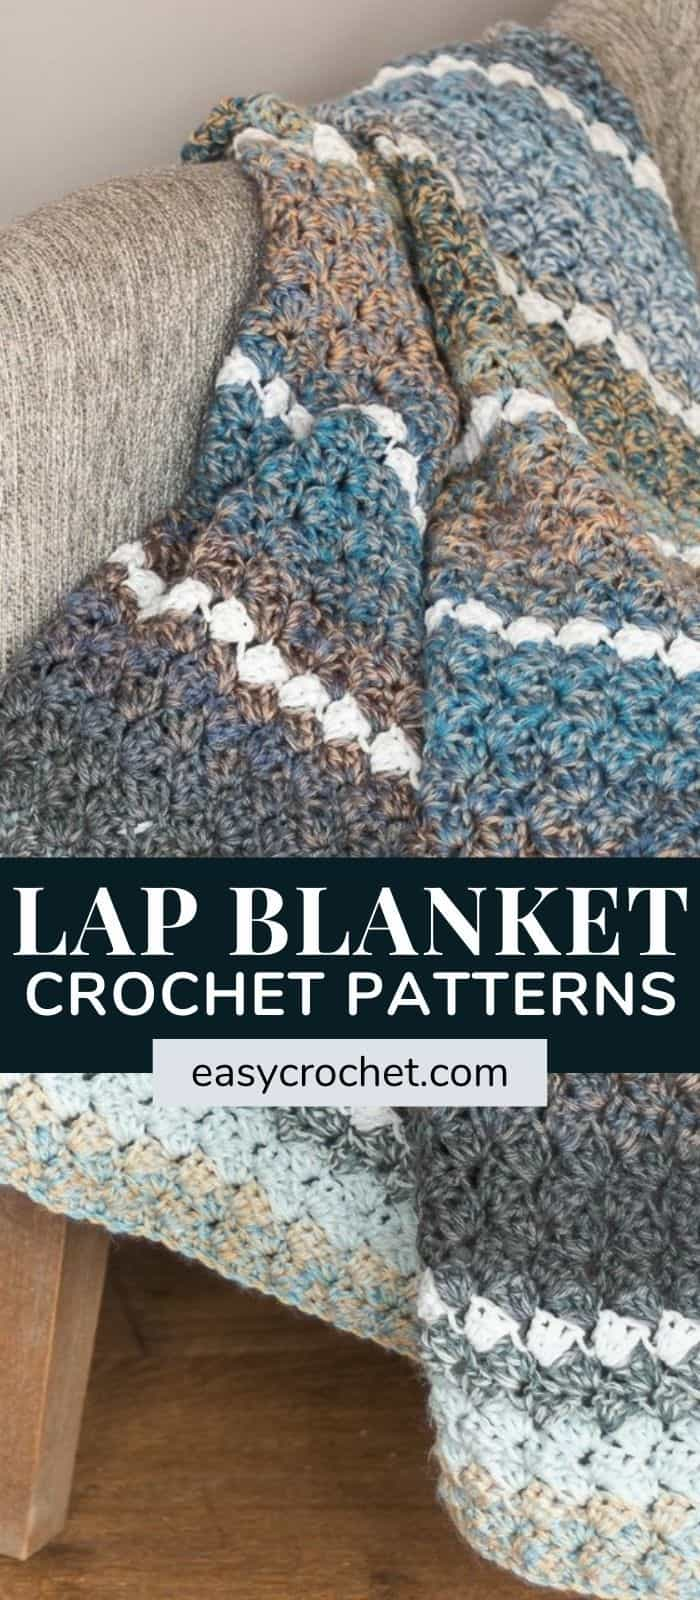 crochet lap blanket patterns